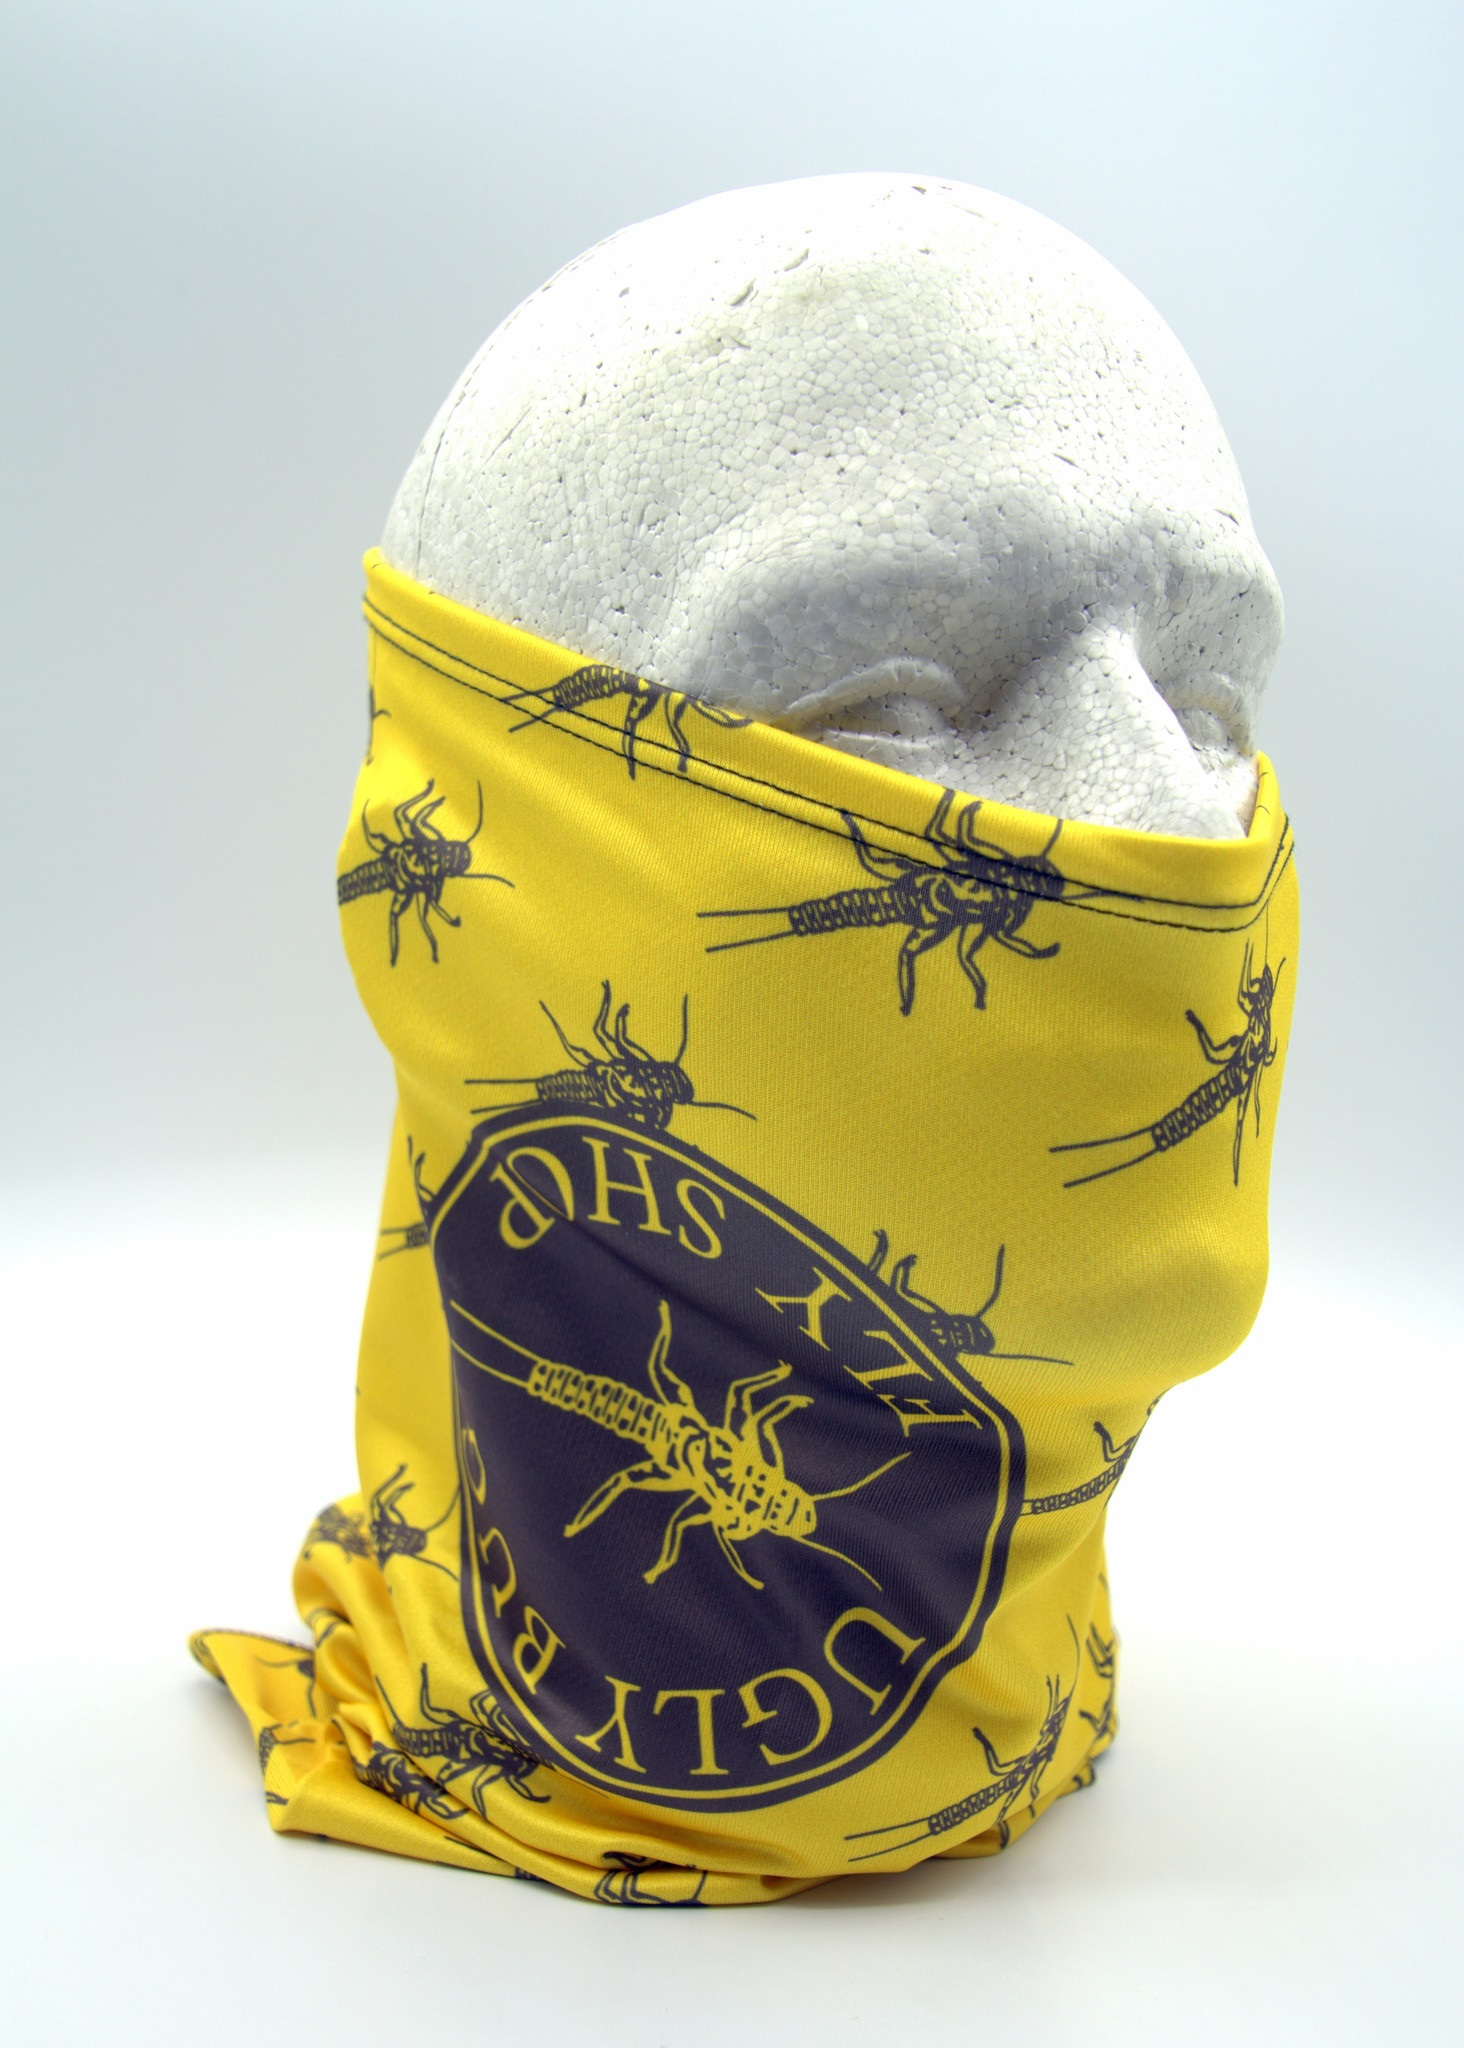 Is a Buff that we use everyday on the water perfect for the CDC's homemade face mask recommendation?